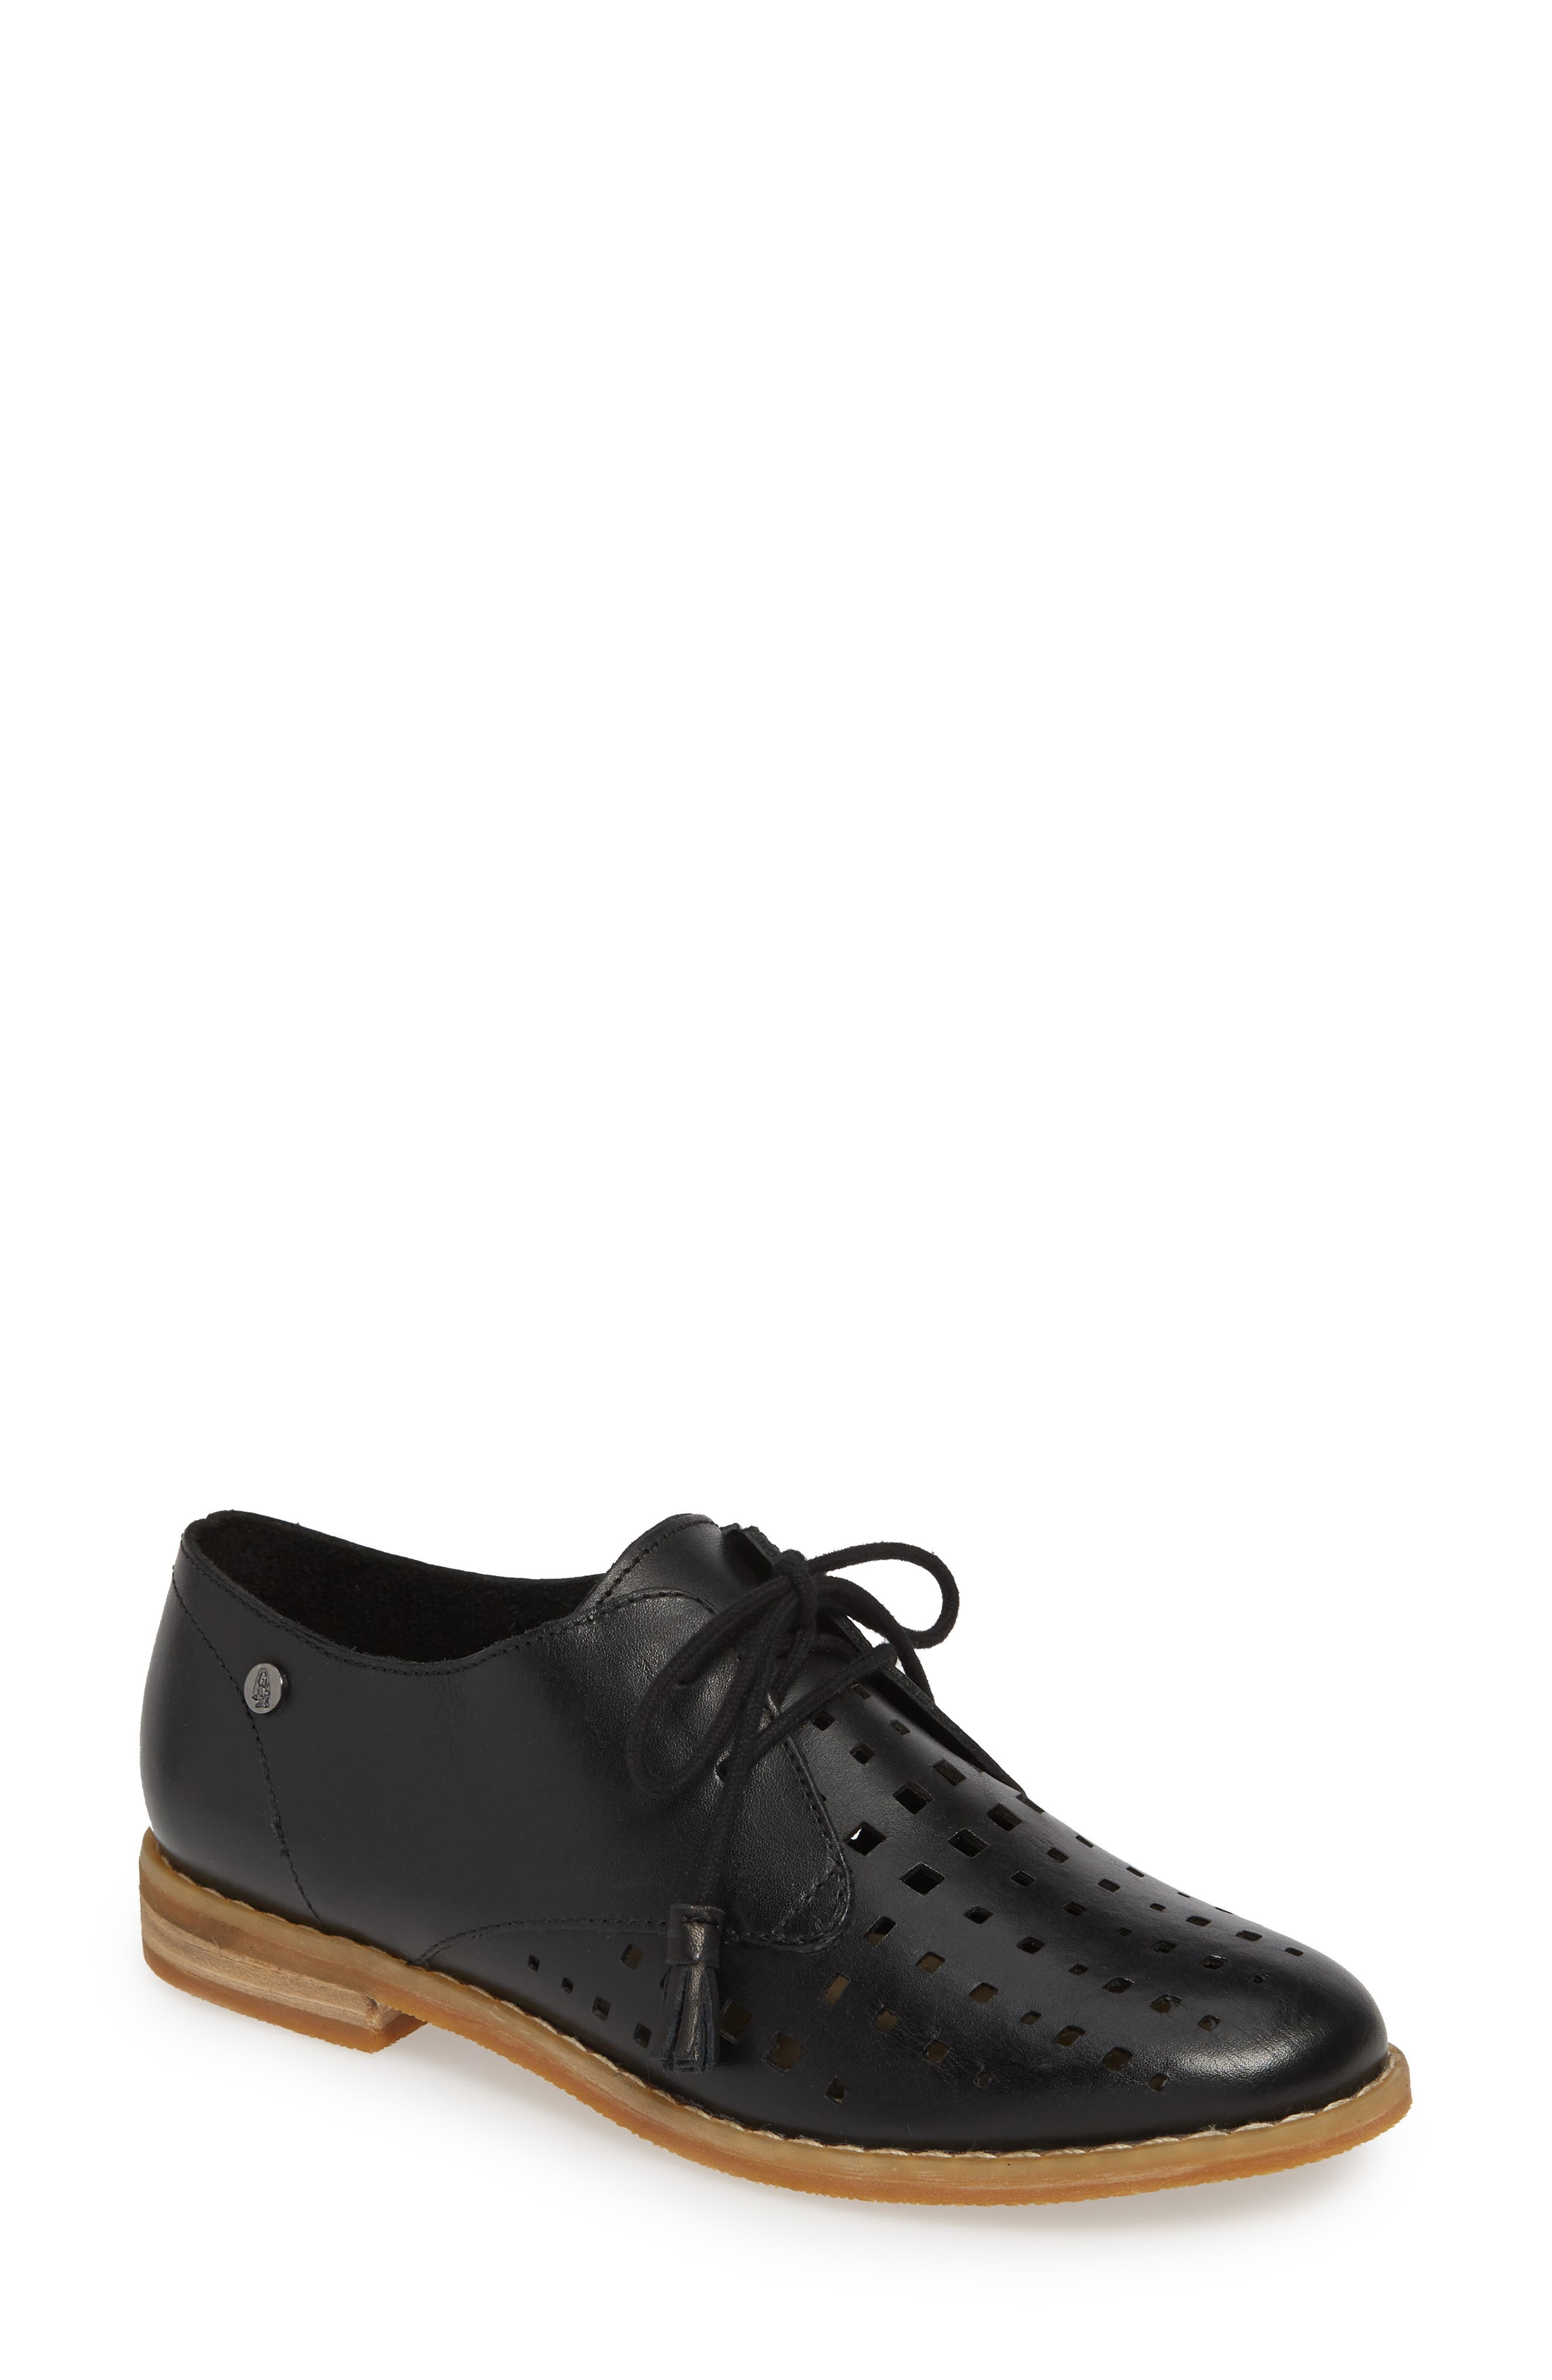 HUSH PUPPIES<SUP>®</SUP>, Chardon Perforated Derby, Main thumbnail 1, color, BLACK LEATHER